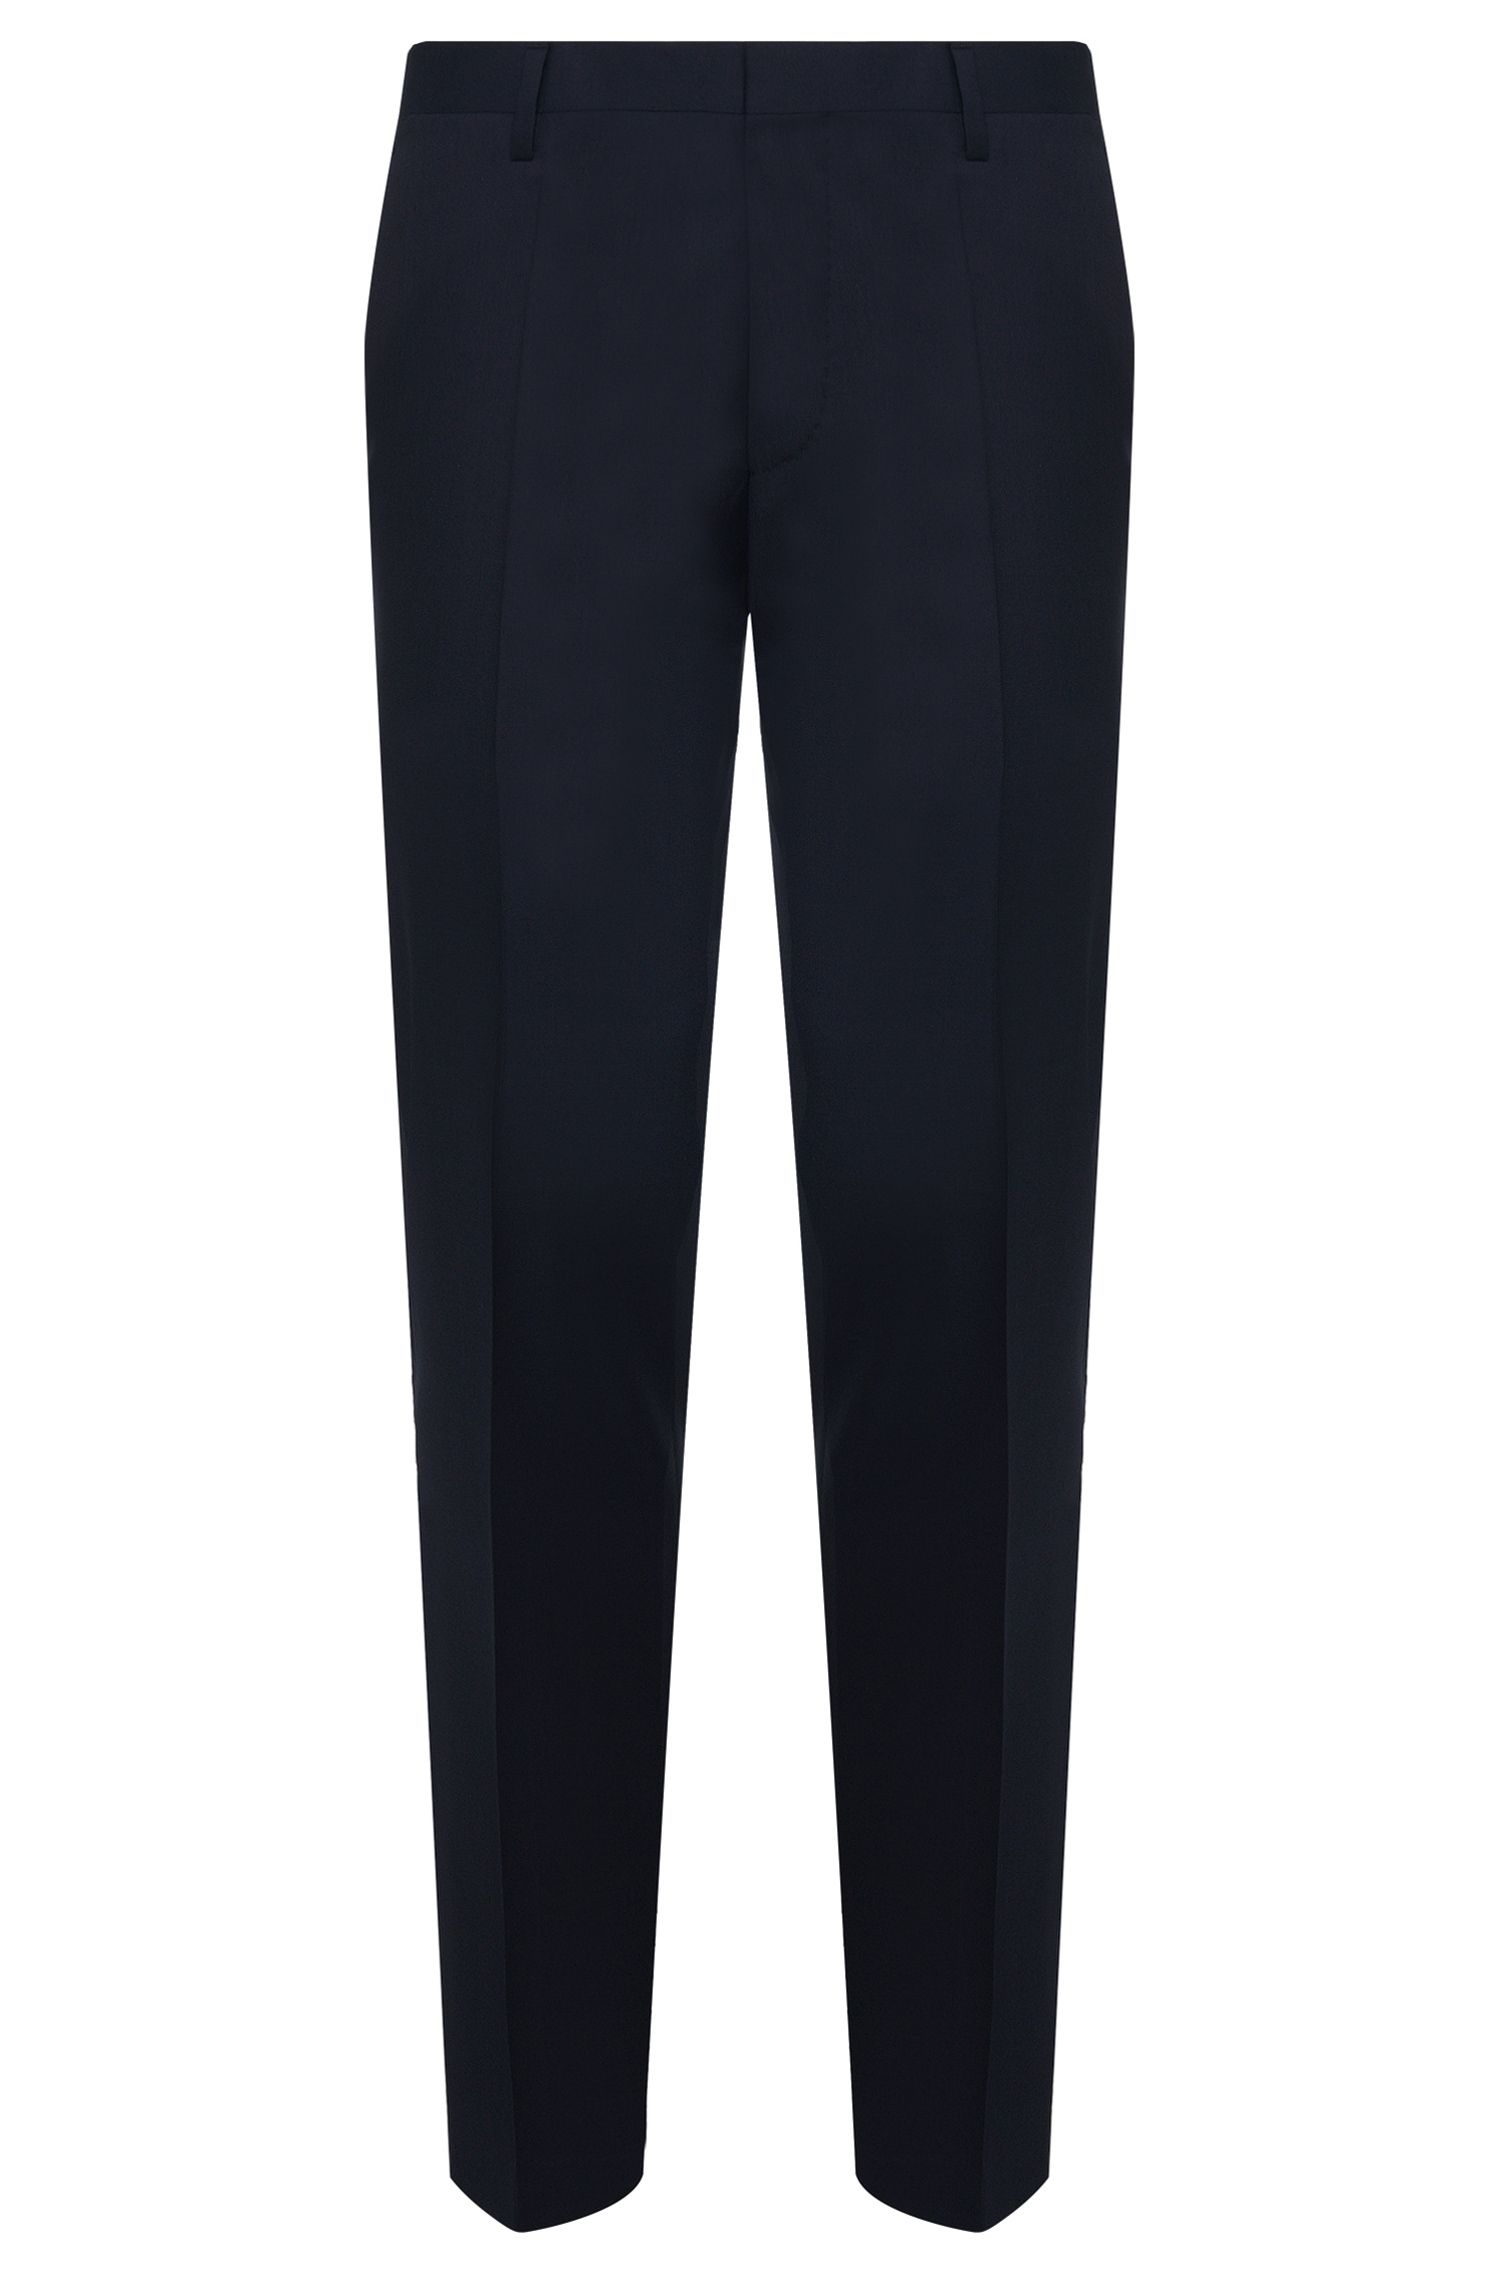 Pantaloni slim fit in pura lana vergine, Blu scuro